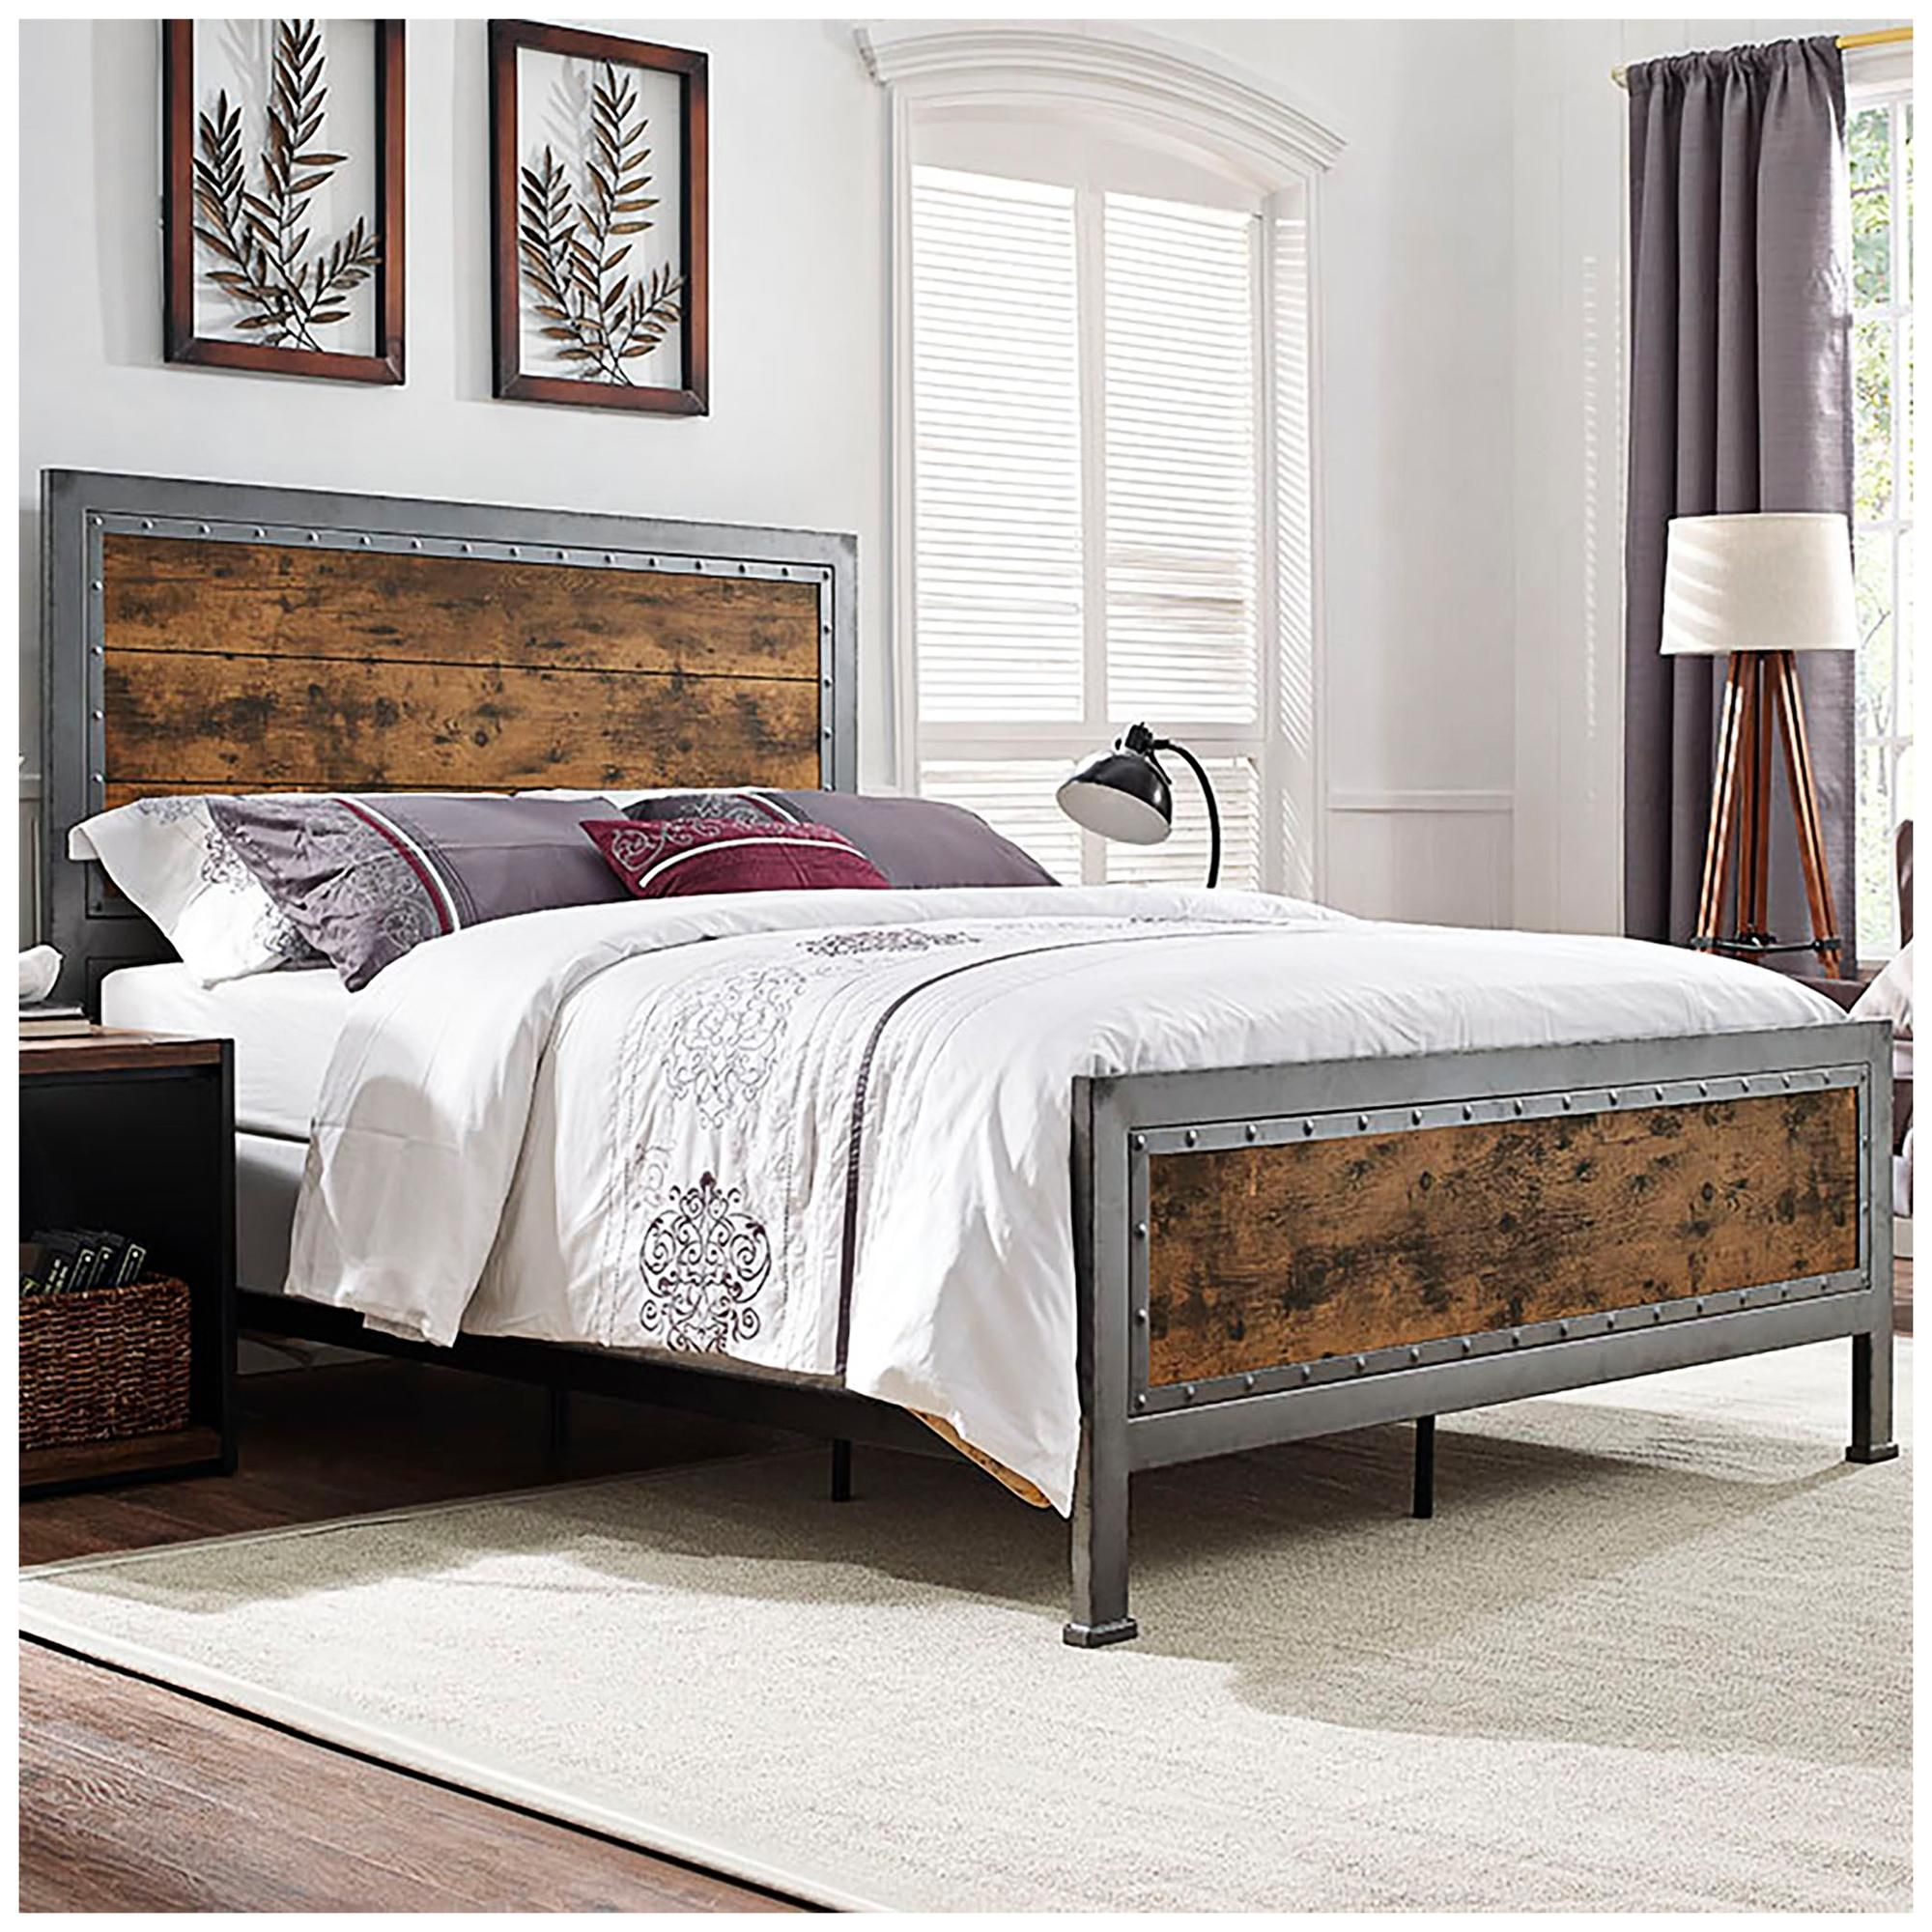 Rustic Home Brown Wood and Metal Queen Bed 24W60